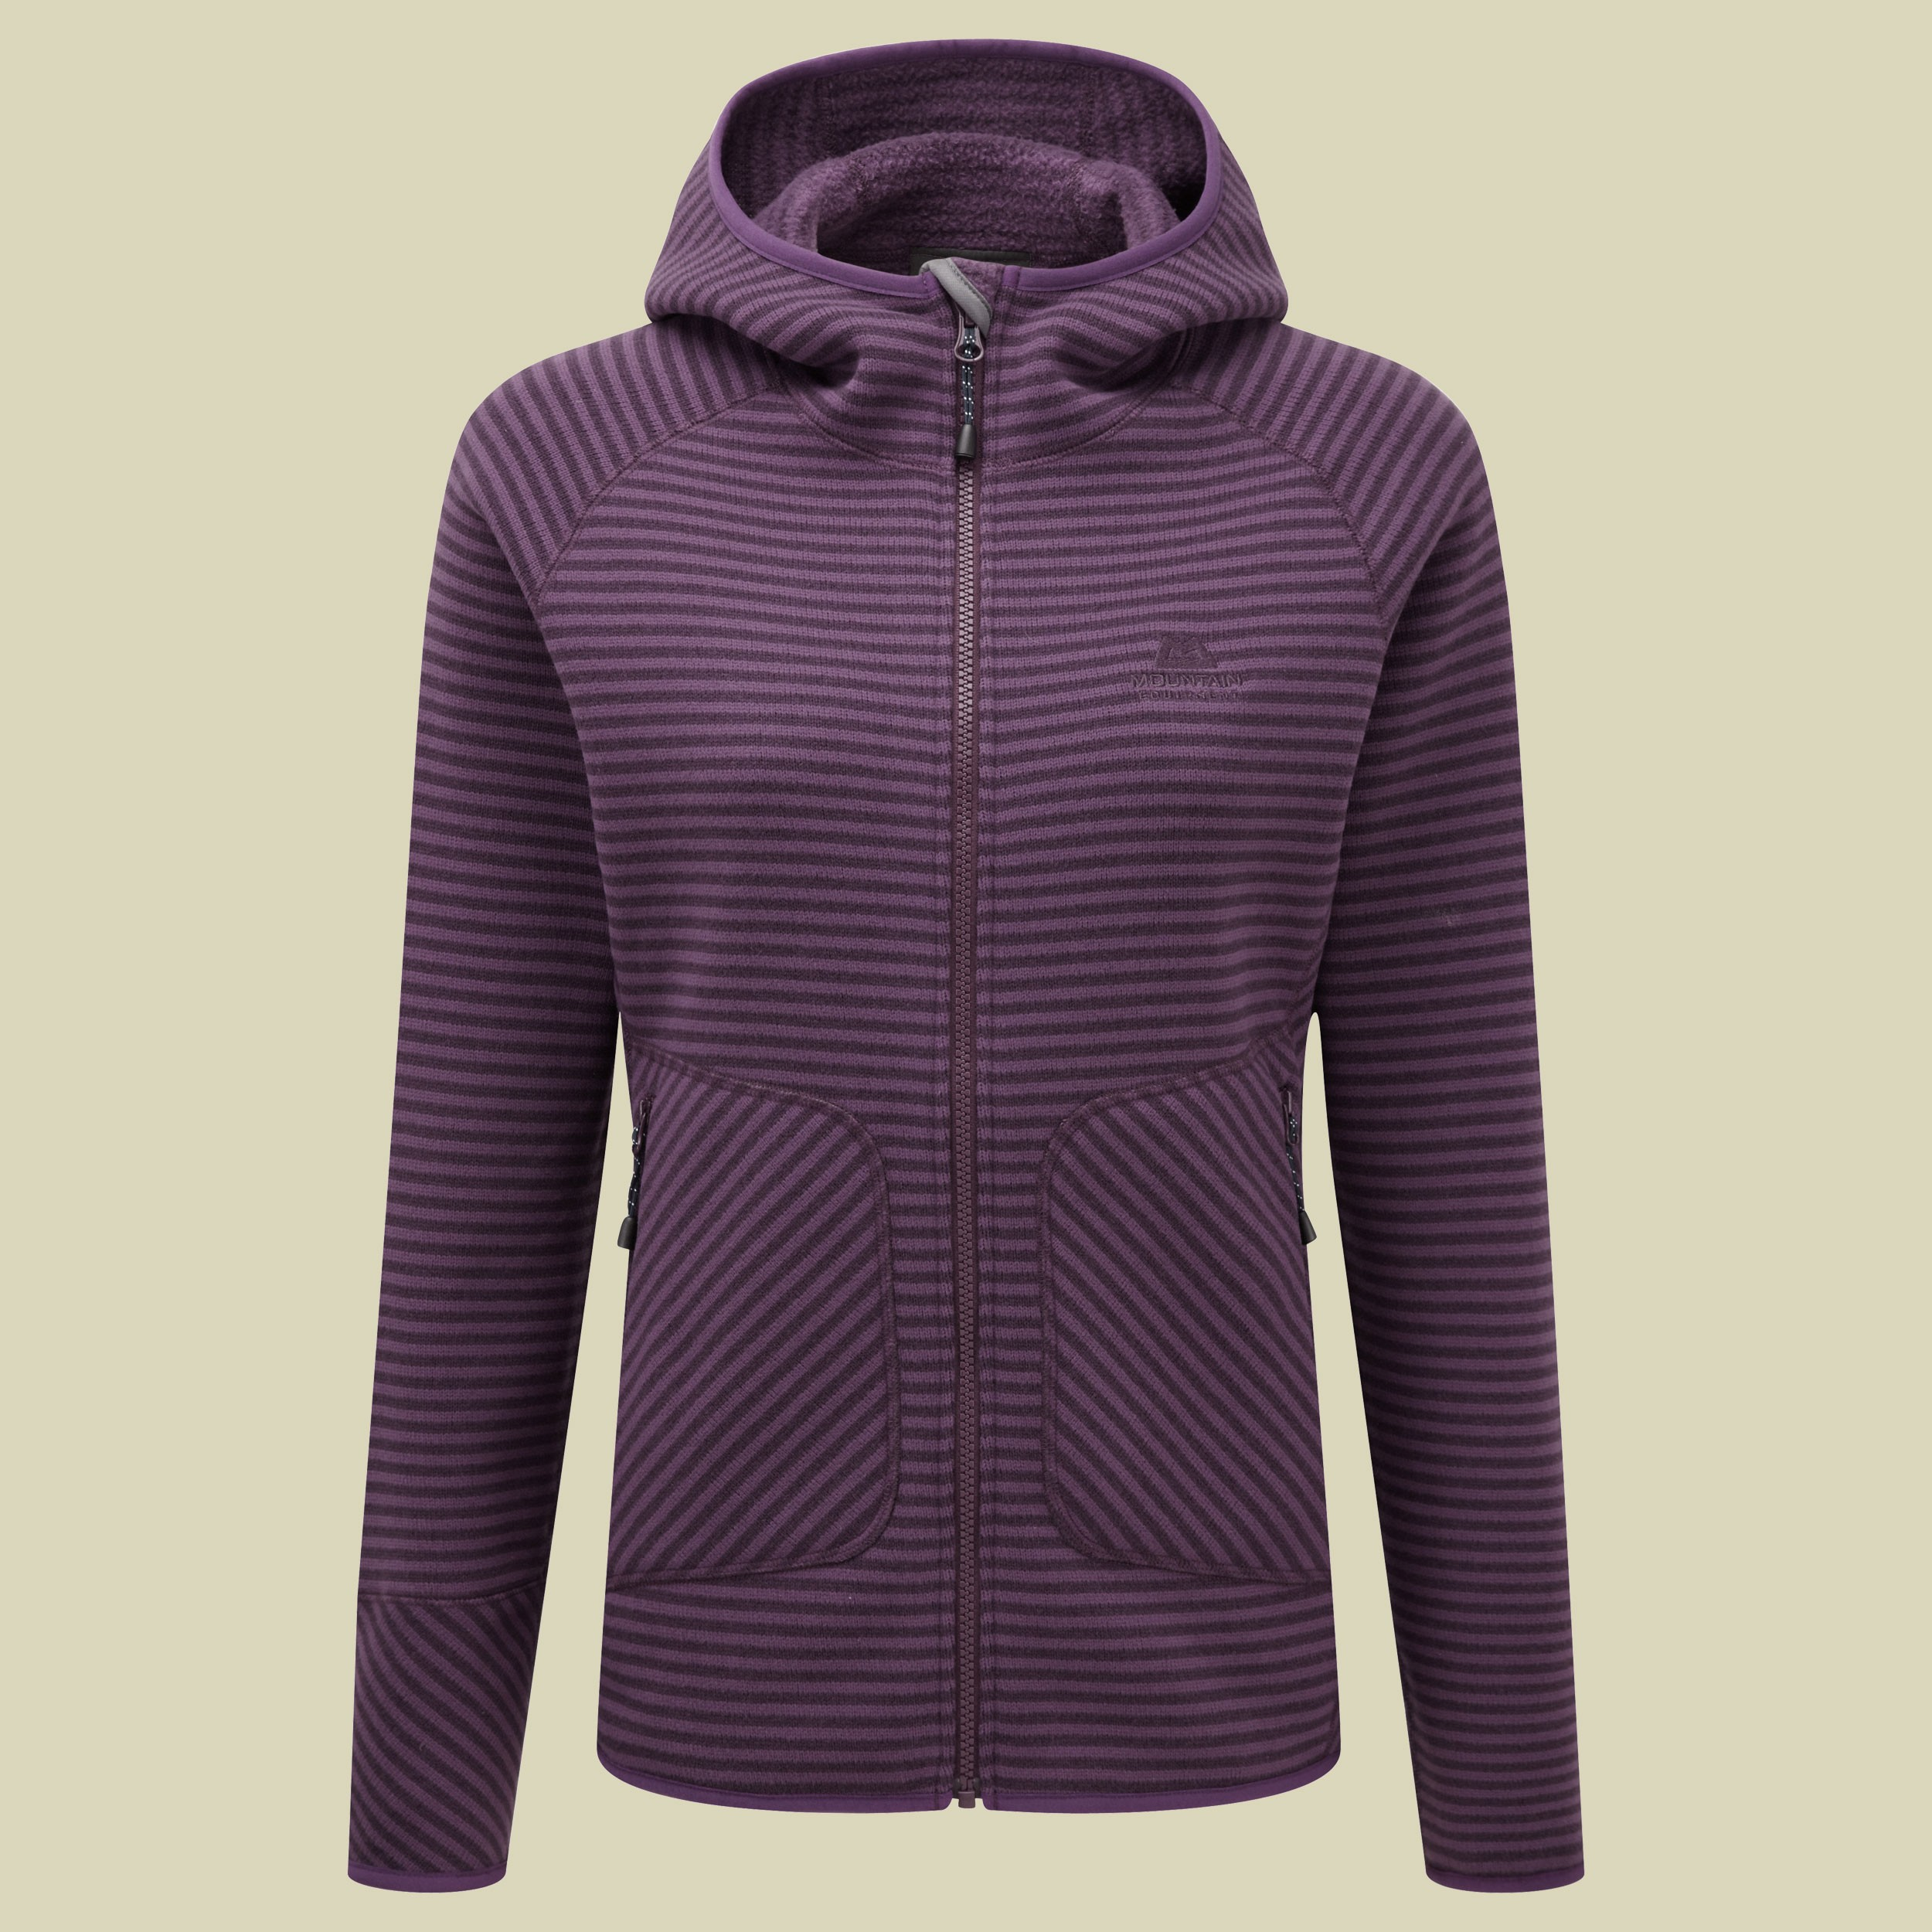 Dark Days Hooded Jacket Women